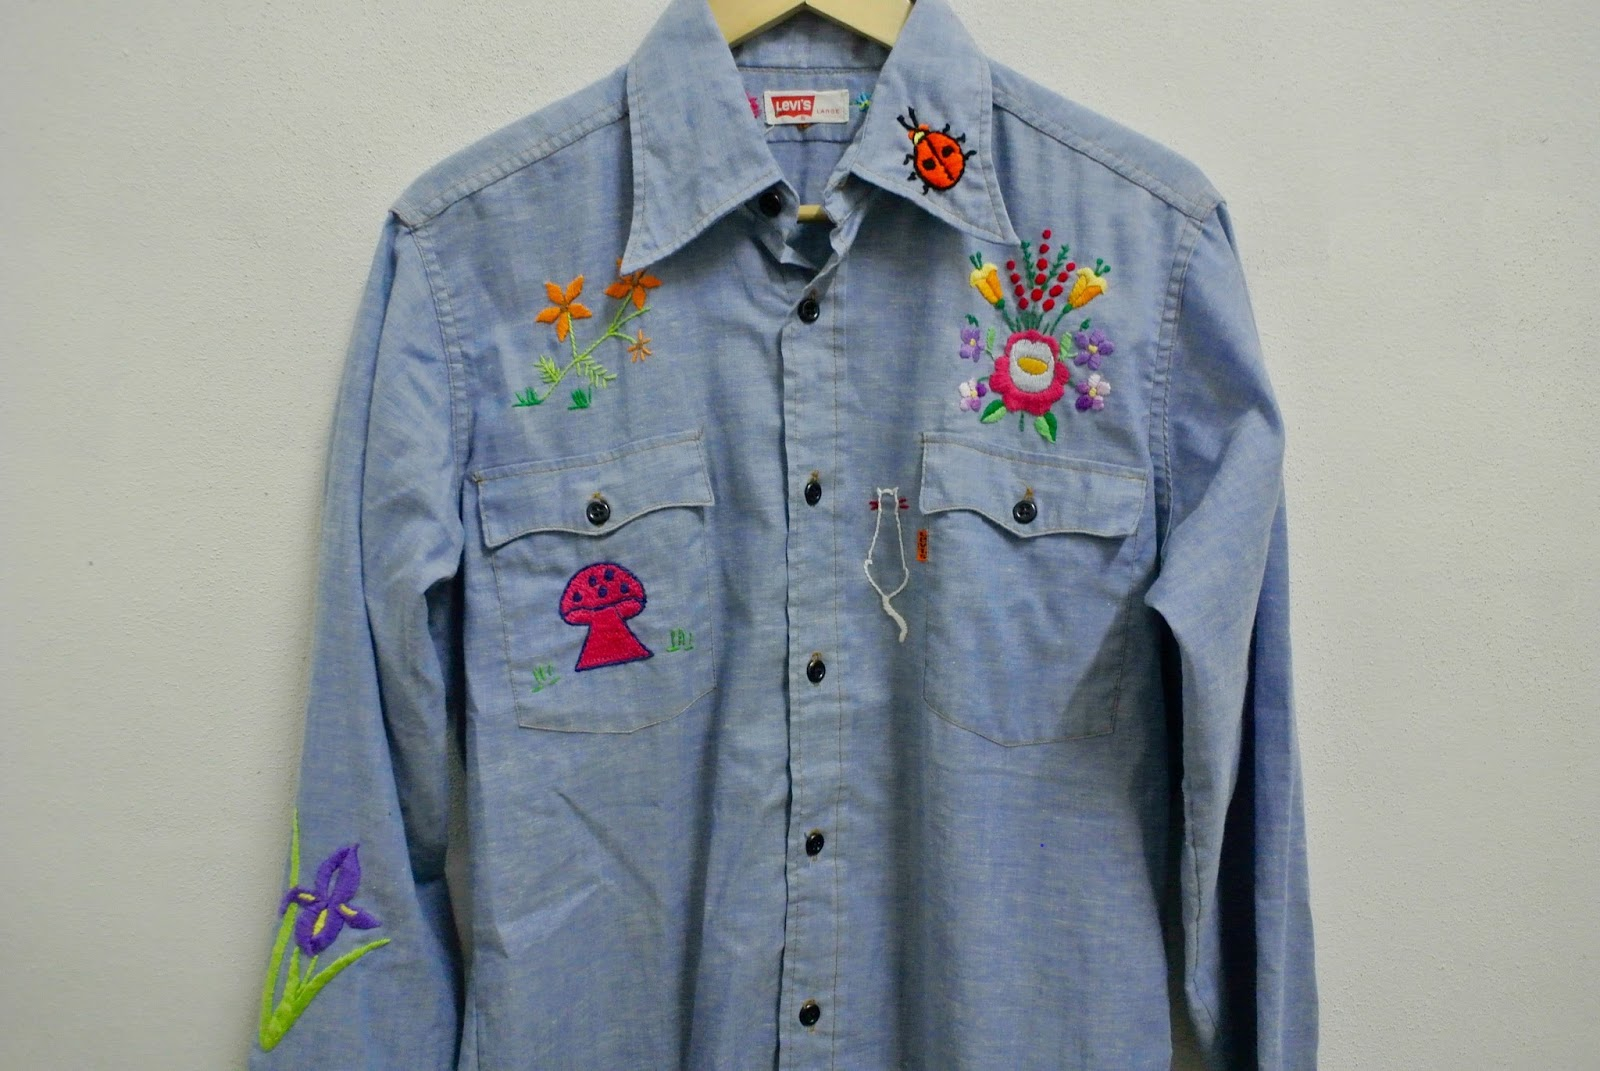 Indieclothingitems vintage levis chambray shirt sold for 5 11 job shirt embroidery